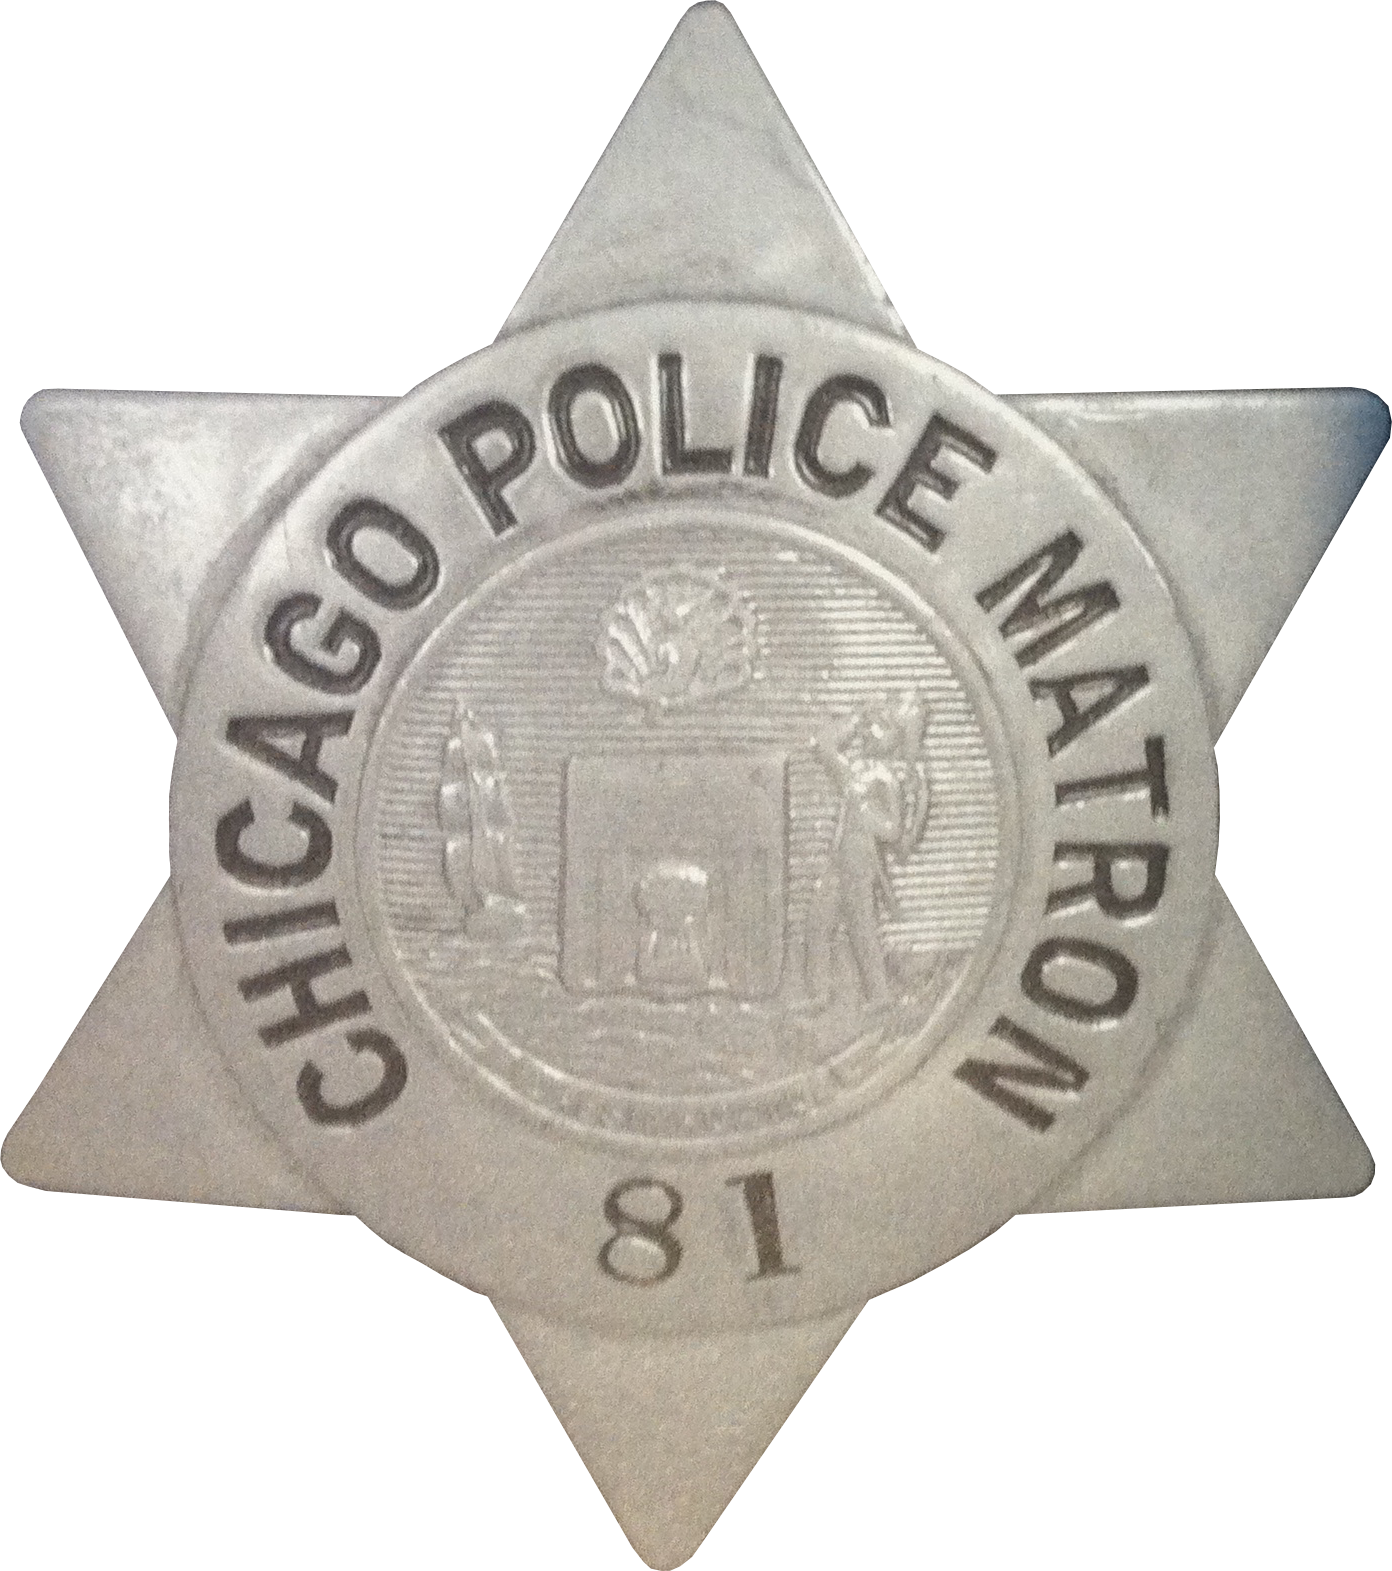 1905 Series - Chicago Police Police Matron Star - New Seal Obverse